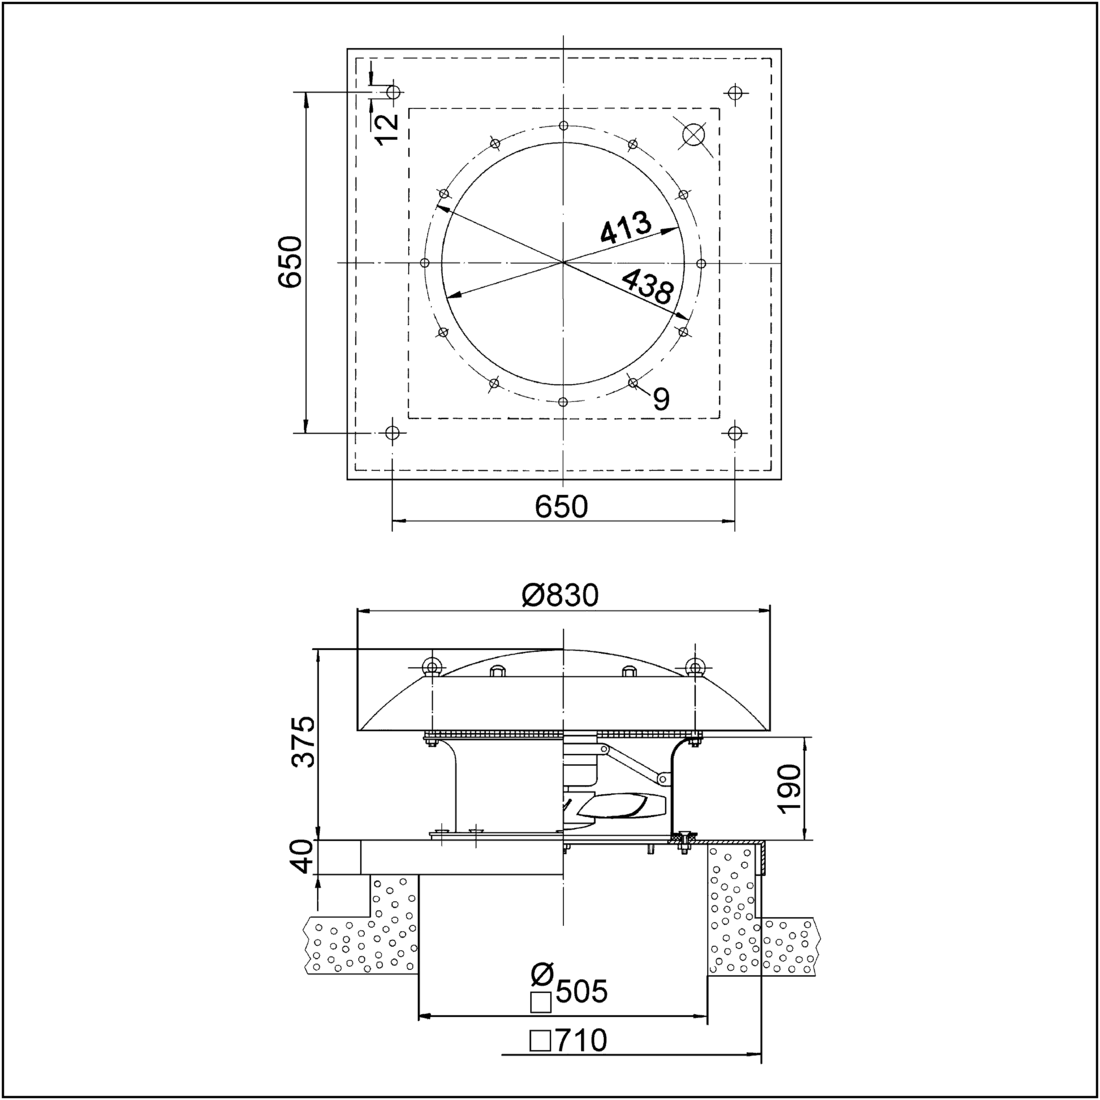 Ezd 40 4 B Maico Alternating Current Diagram The Produced In Im0001621 Axial Roof Fan Horizontal Air Outlet